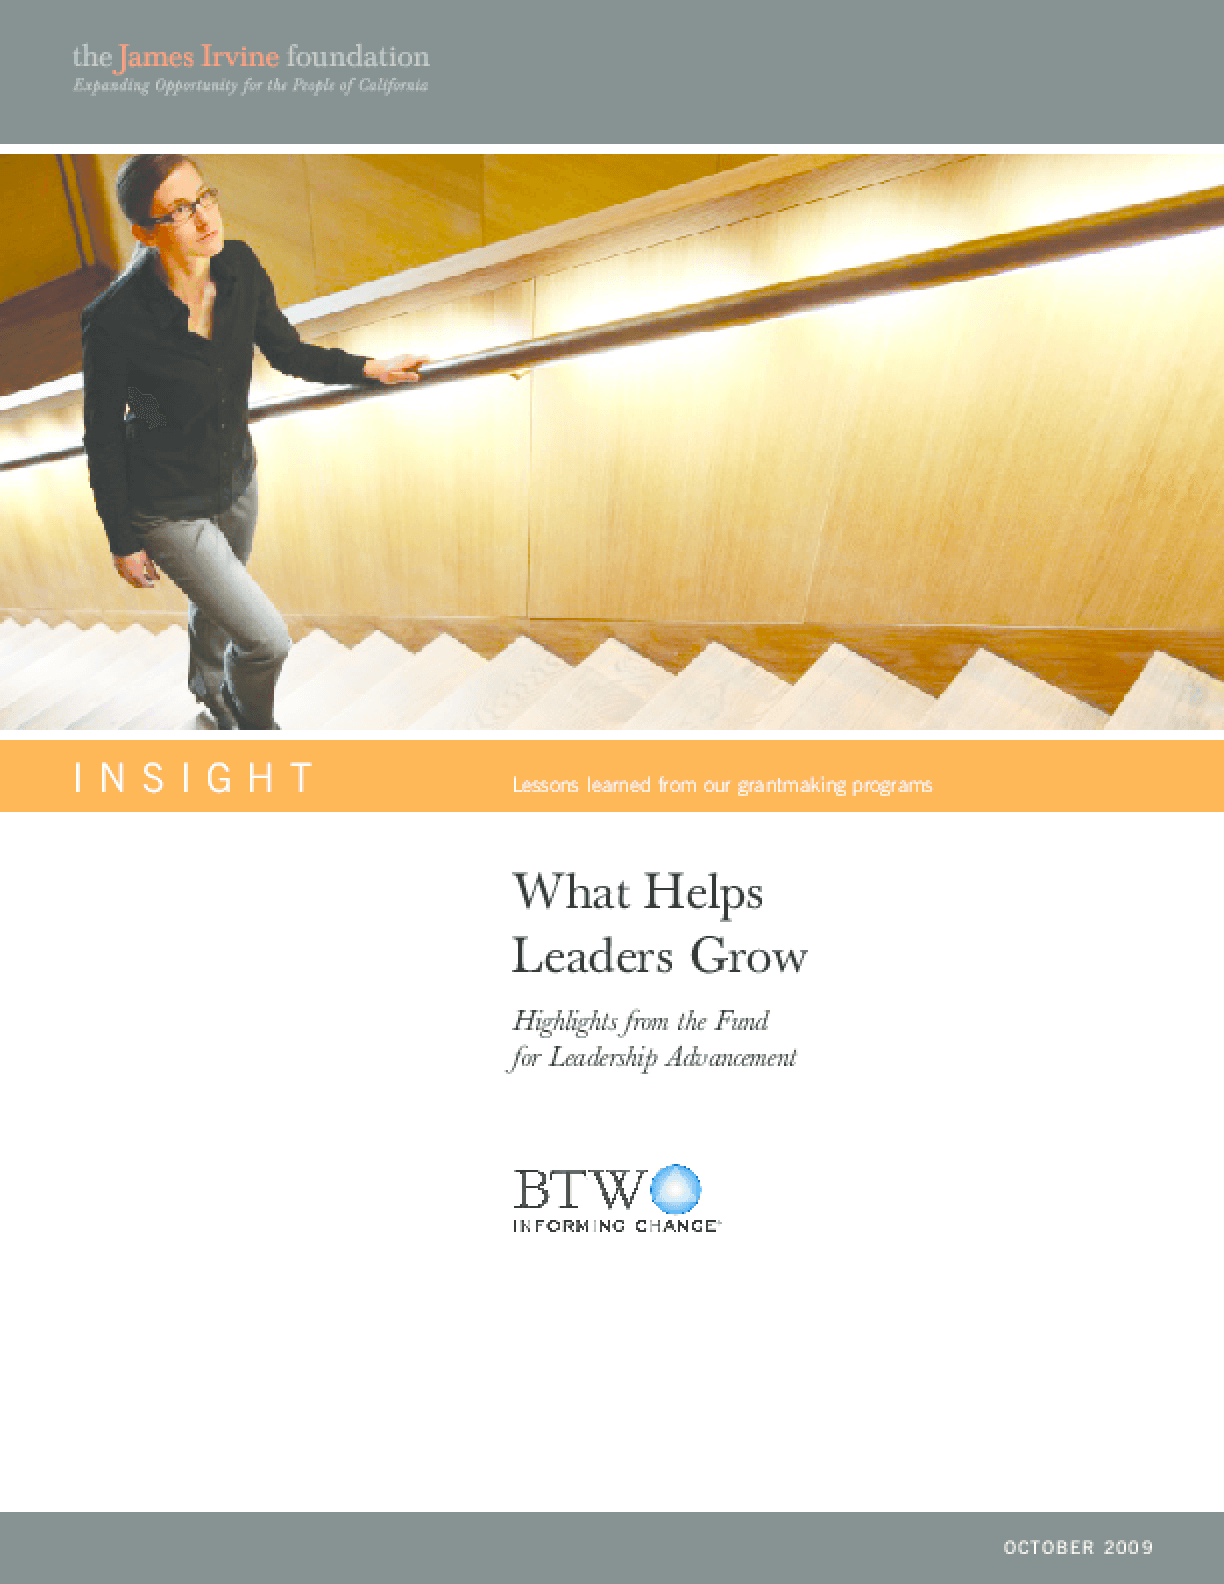 What Helps Leaders Grow: Highlights from the Fund for Leadership Advancement